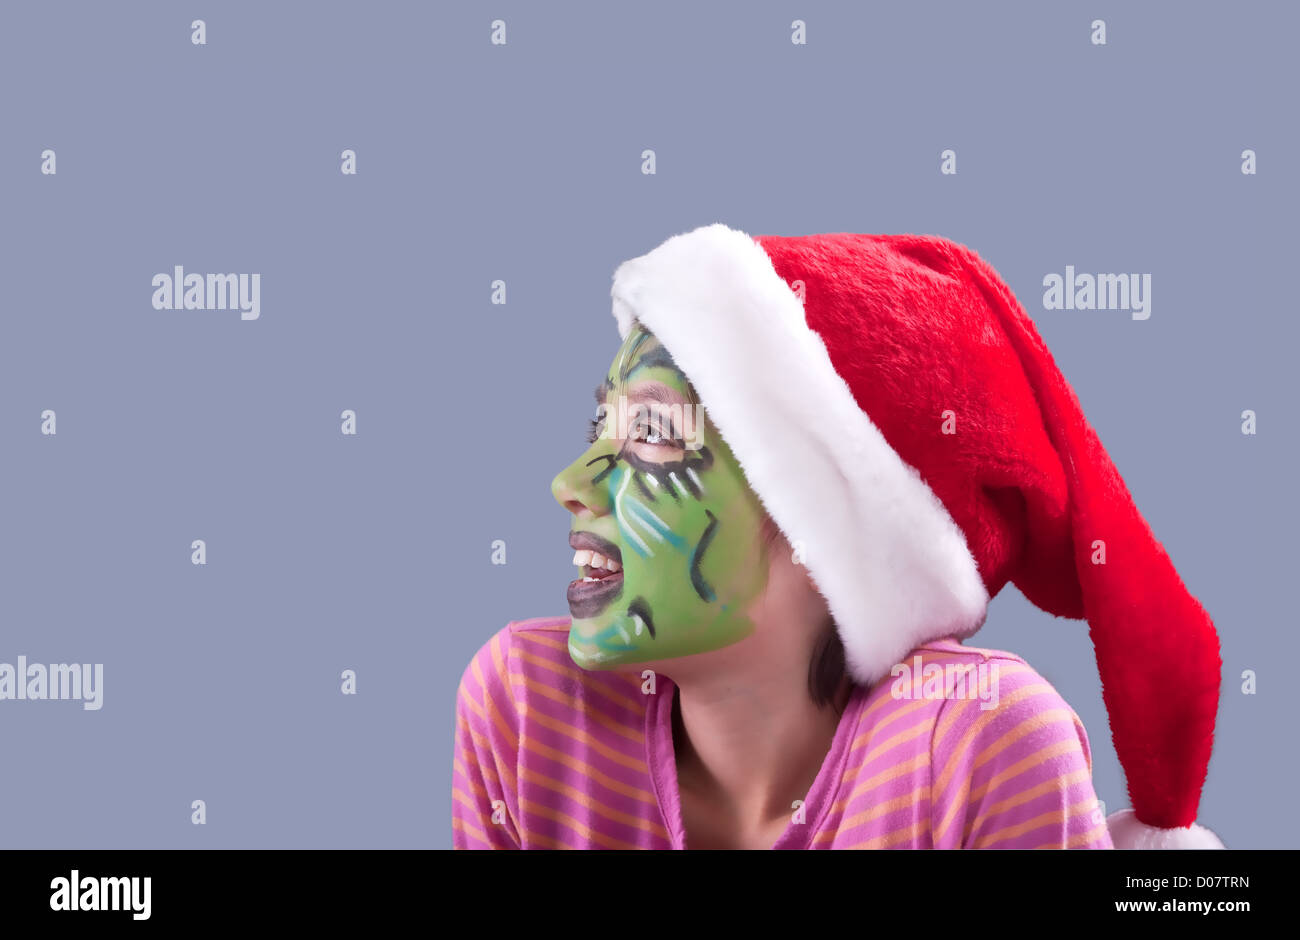 A Young Girl Wears A Santa Hat And Has Face Paint Similar To The Stock Photo Alamy